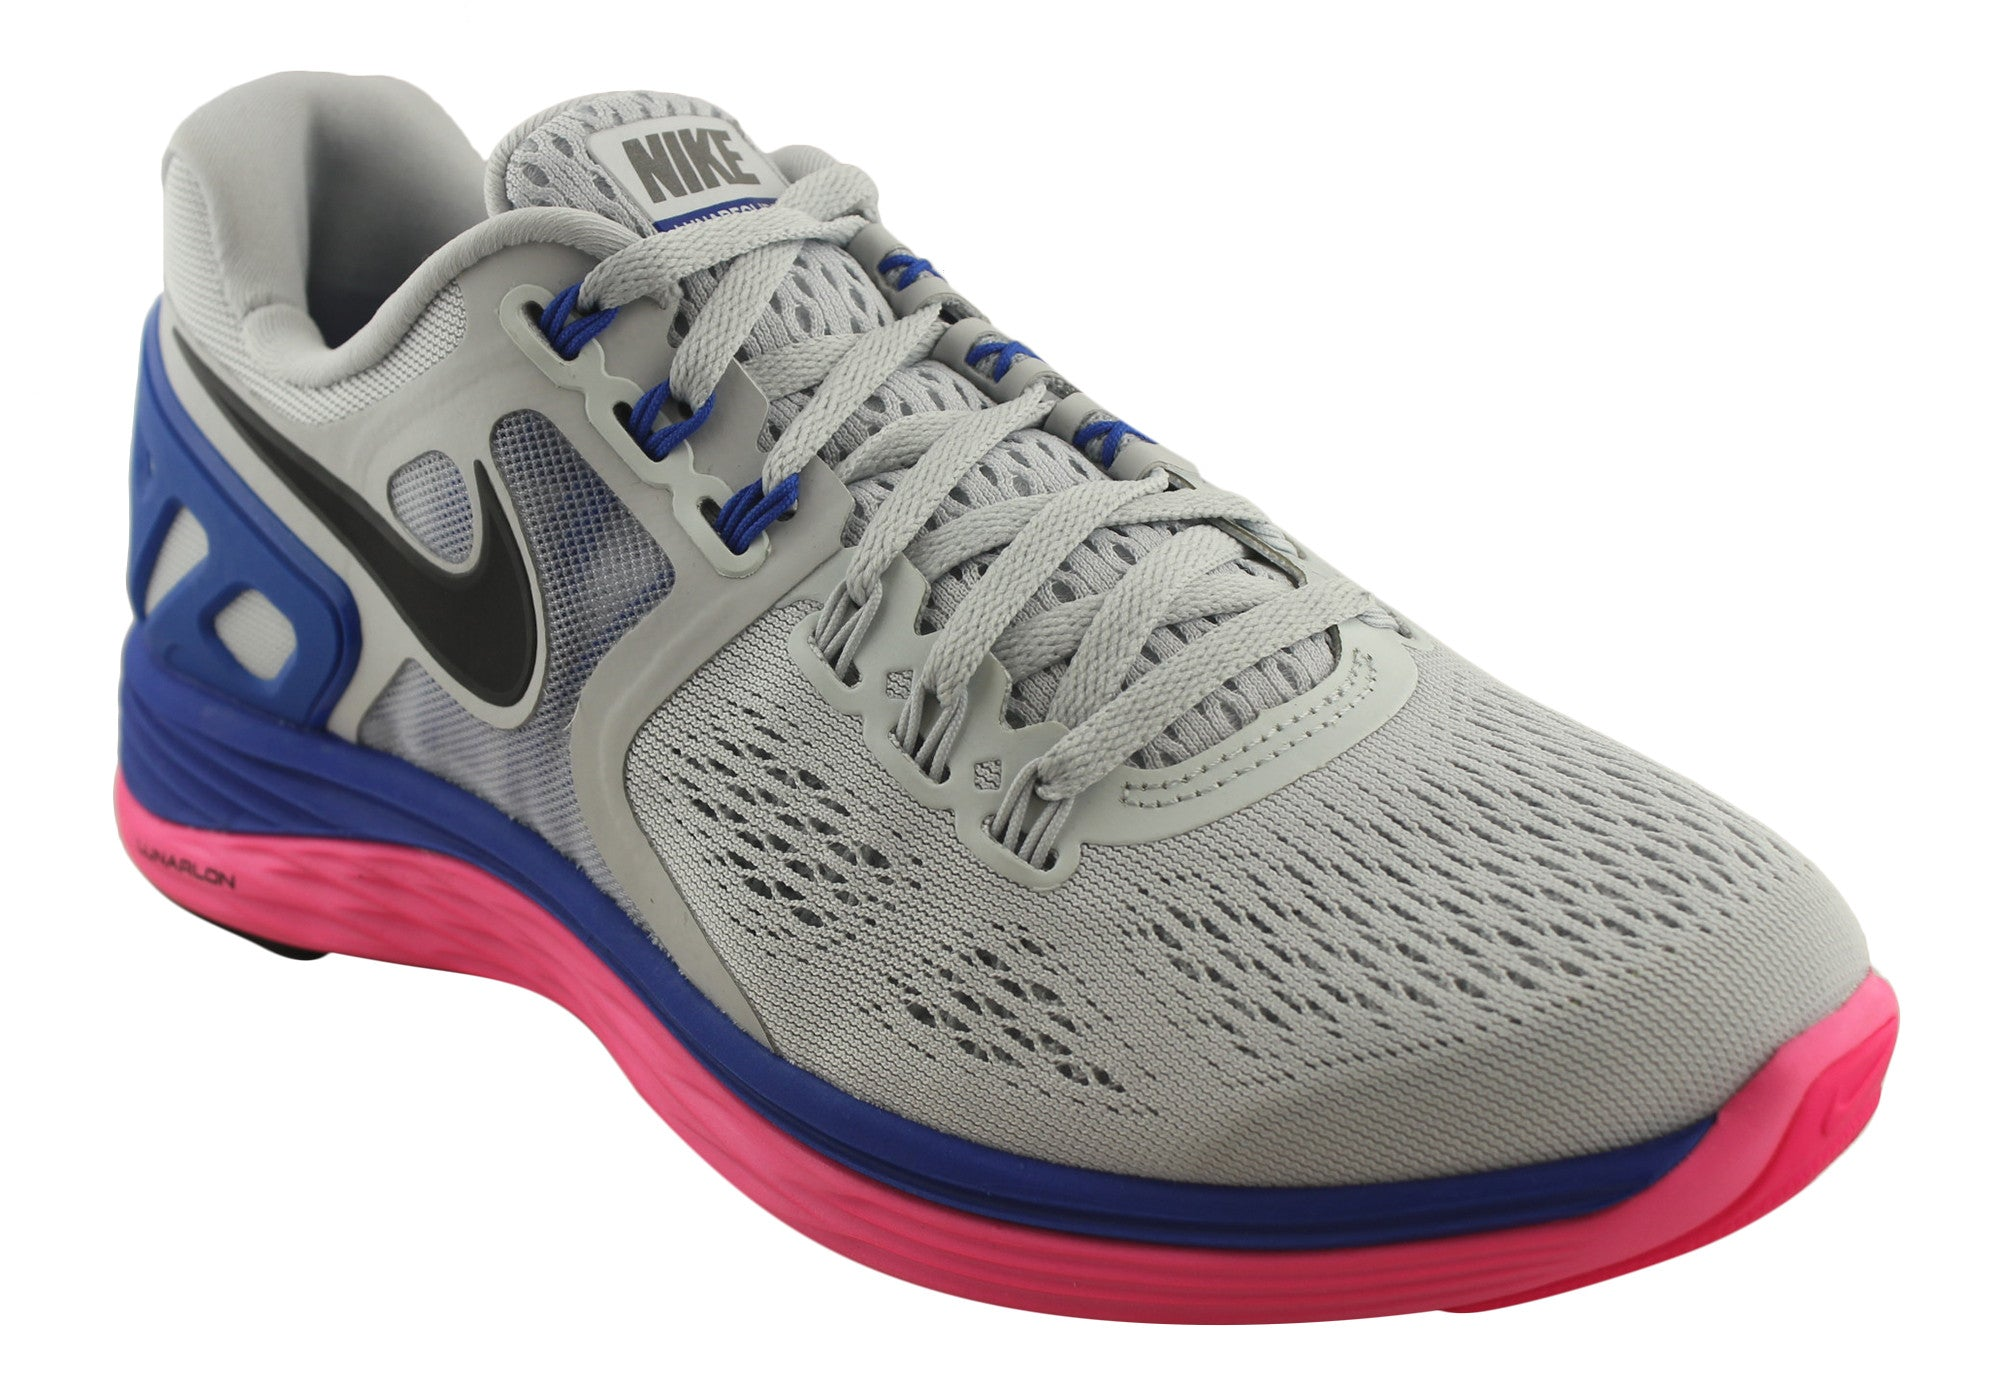 Nike Lunareclipse 4 Womens Comfortable Running Shoes